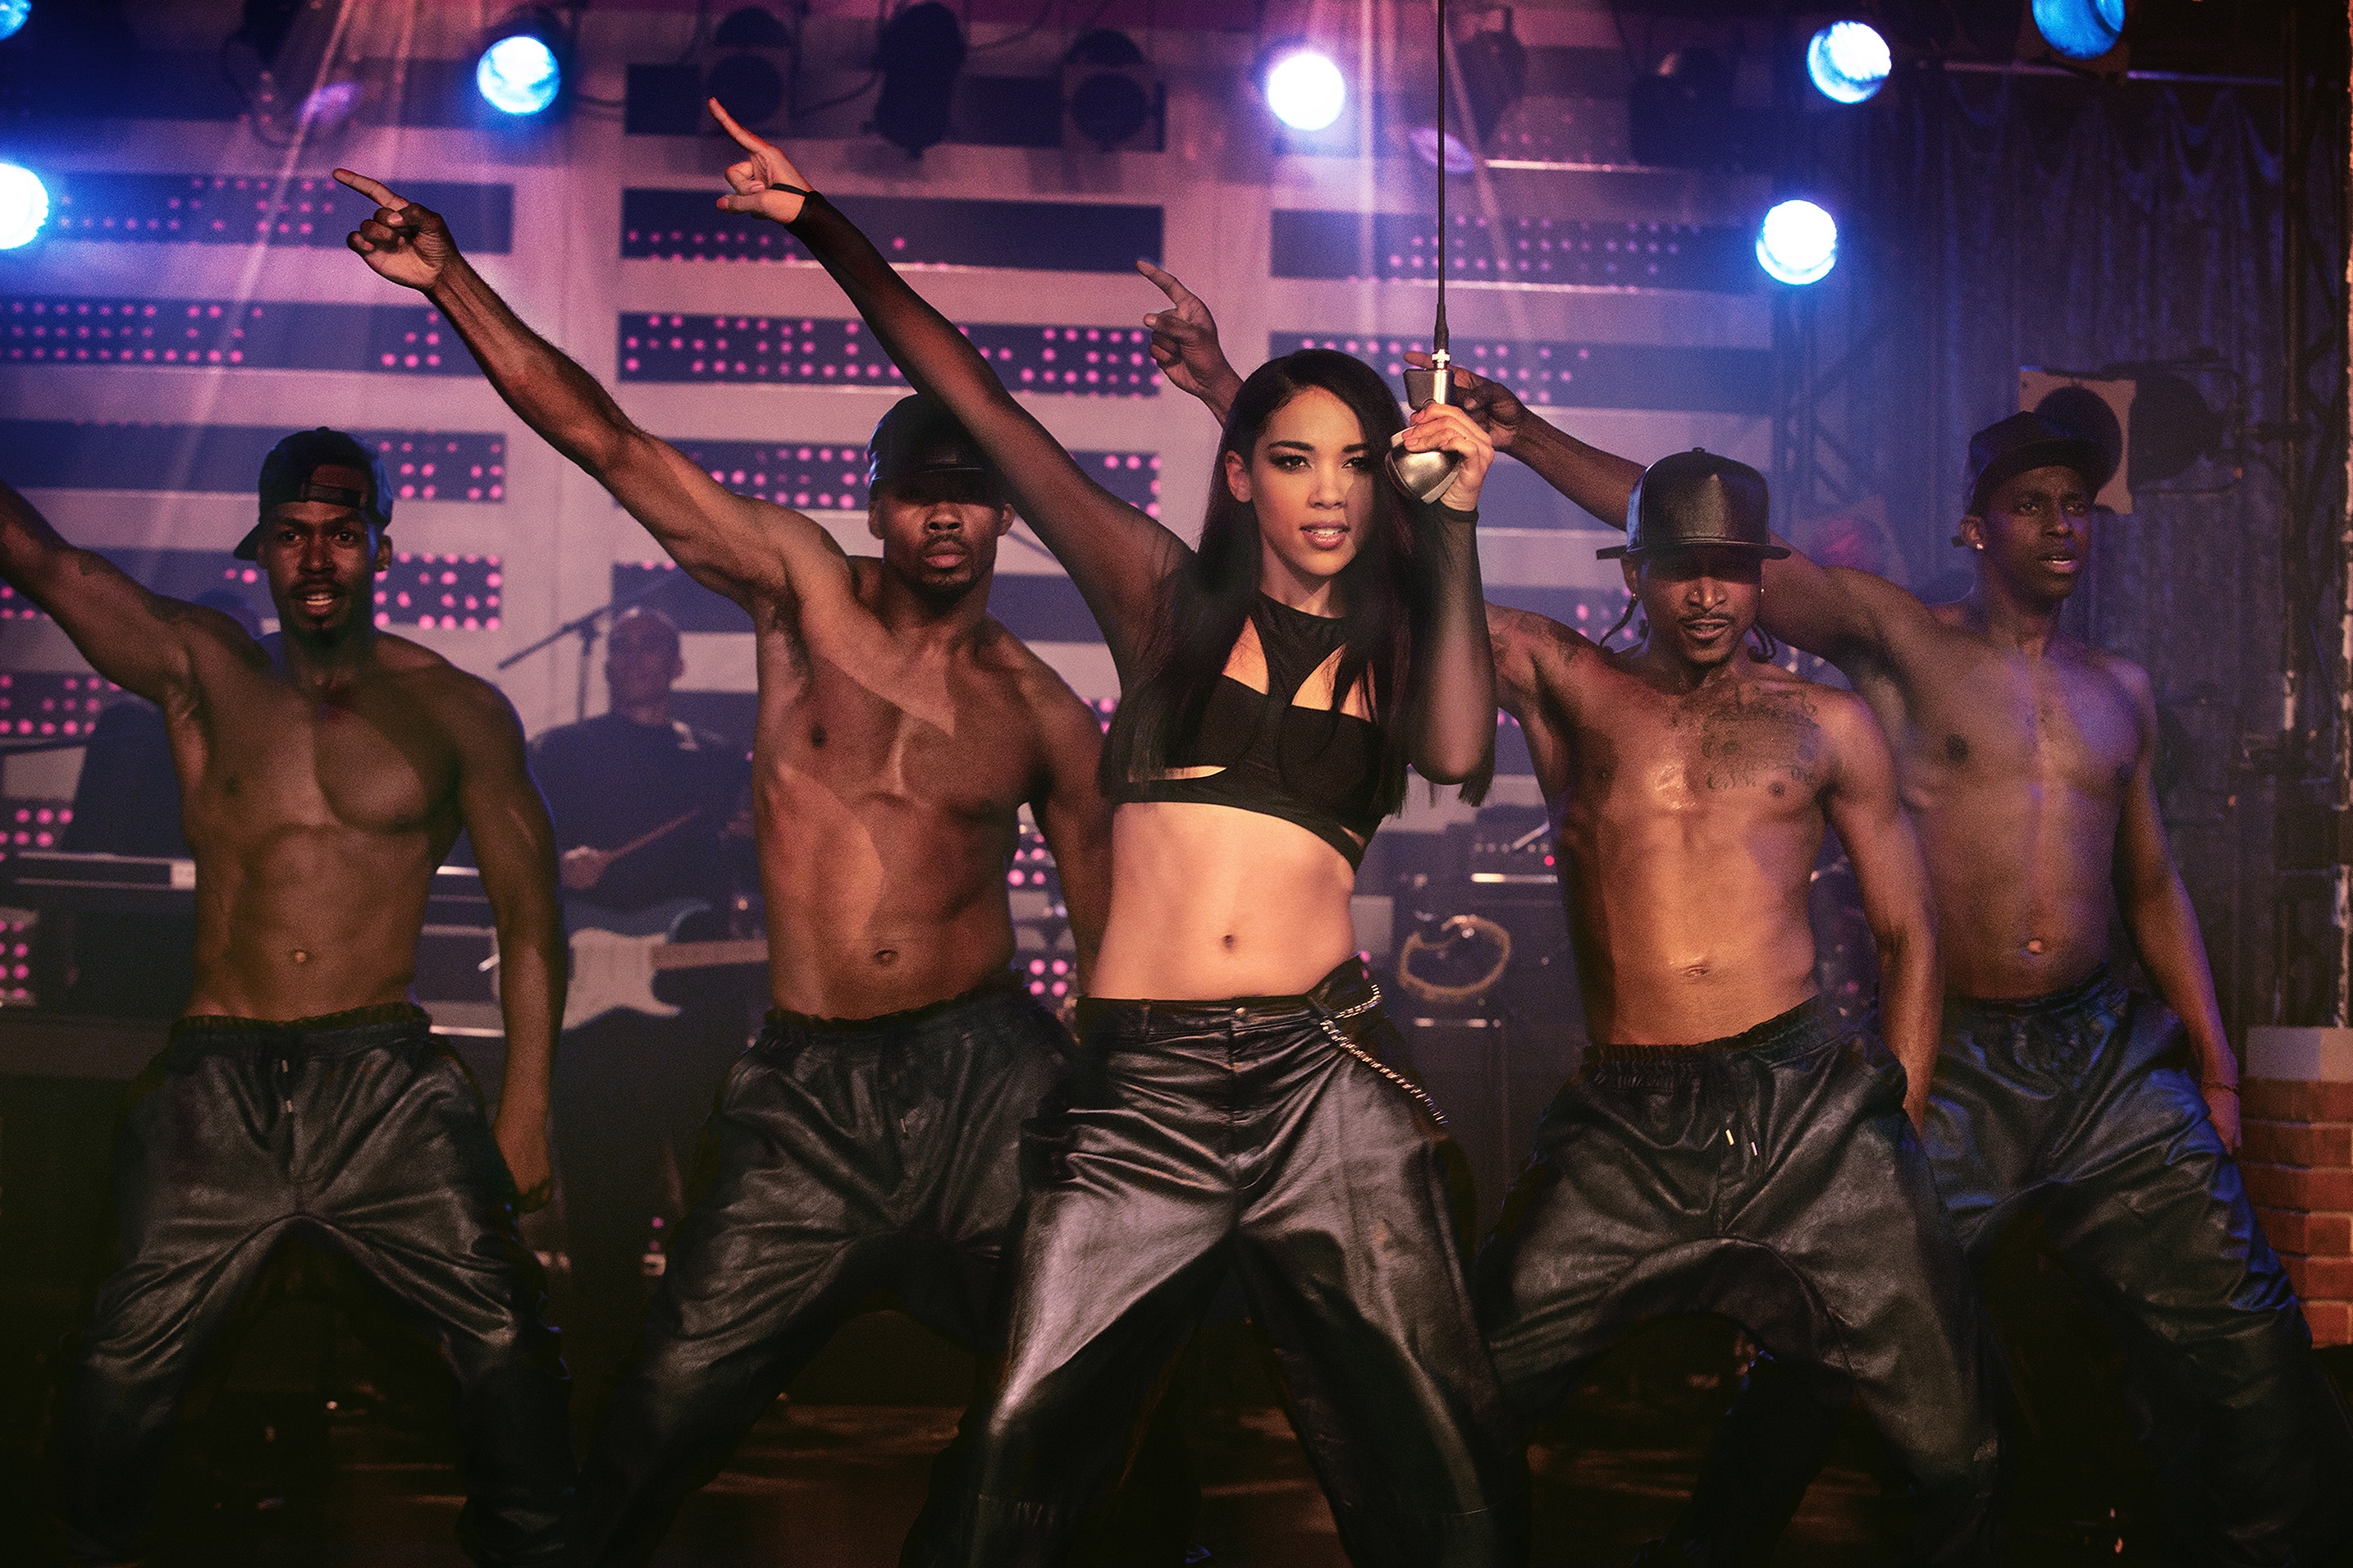 Aaliyah, The Princess of R&B LifeTime Movie This Saturday 11/15! #AaliyahMovie #TalentIsEternal